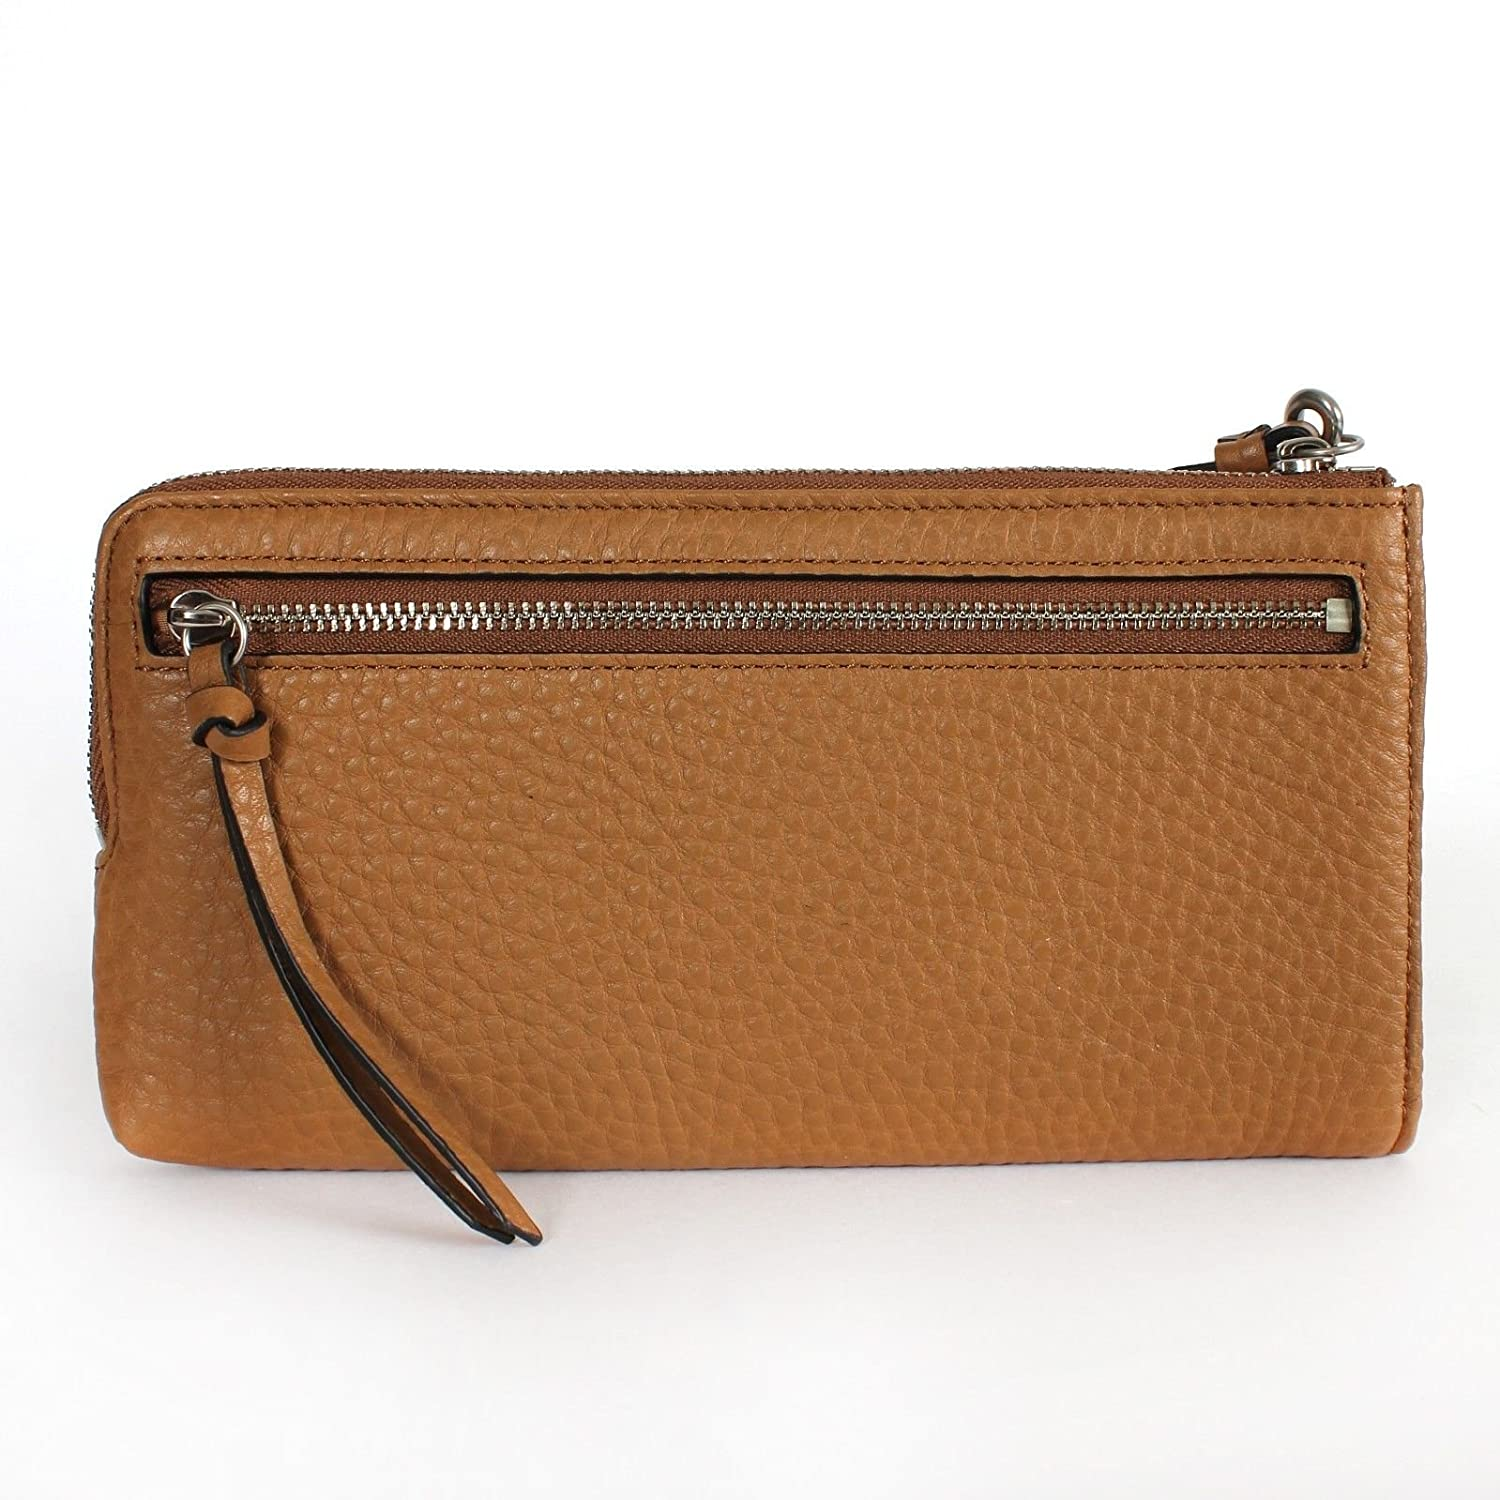 Coach Bleecker Leather Zippy Wallet Wristlet